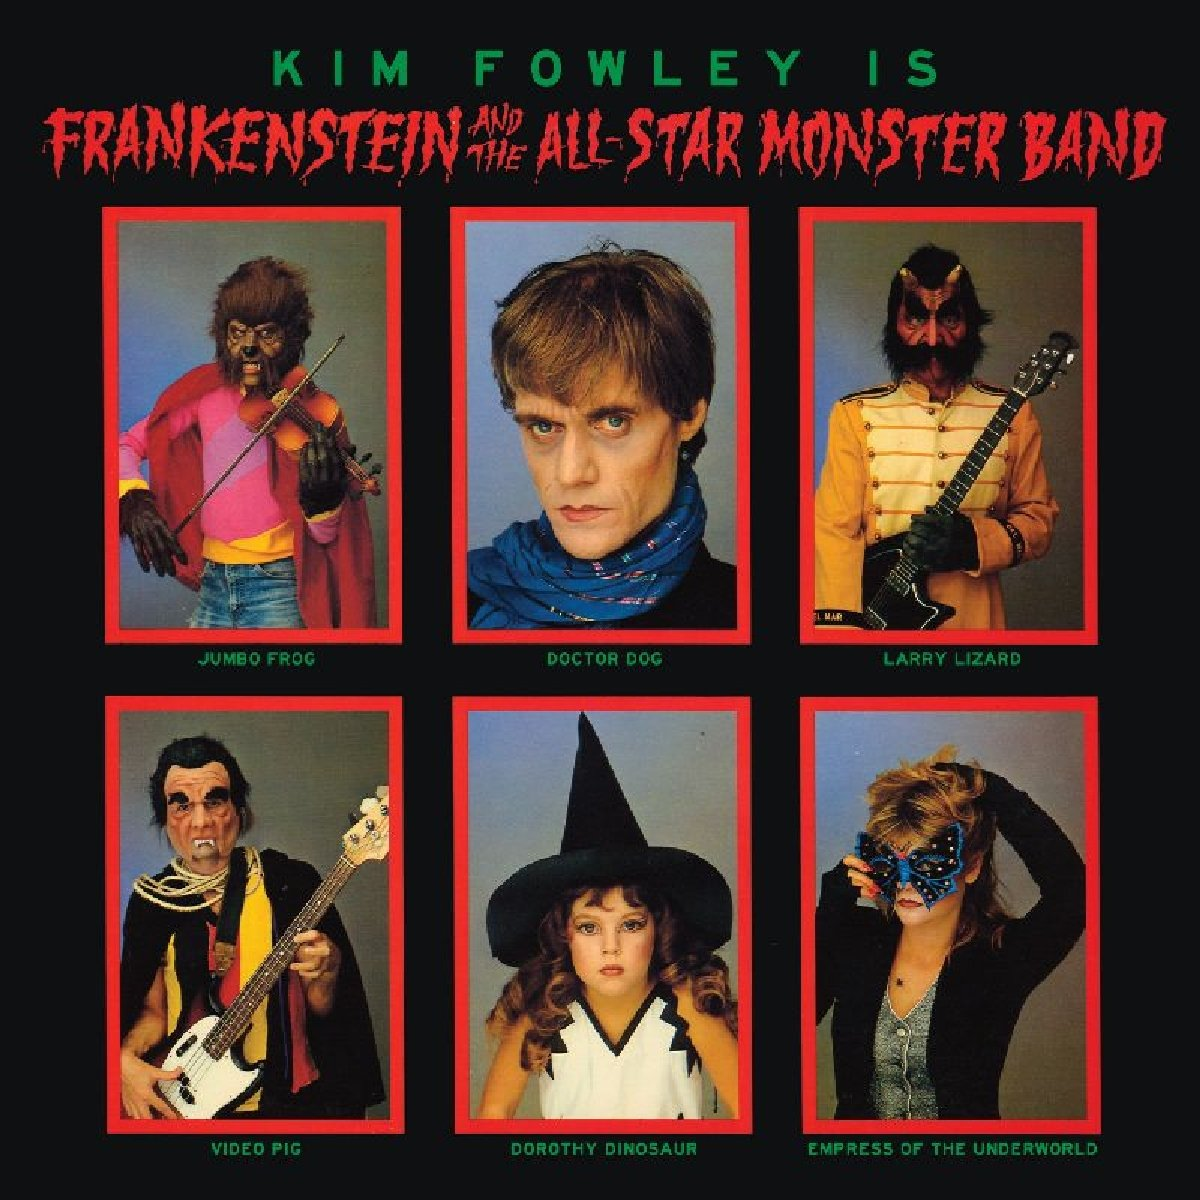 Kim Fowley Presents - Frankenstein And The All-Star Monster Band - Amazon.com Music